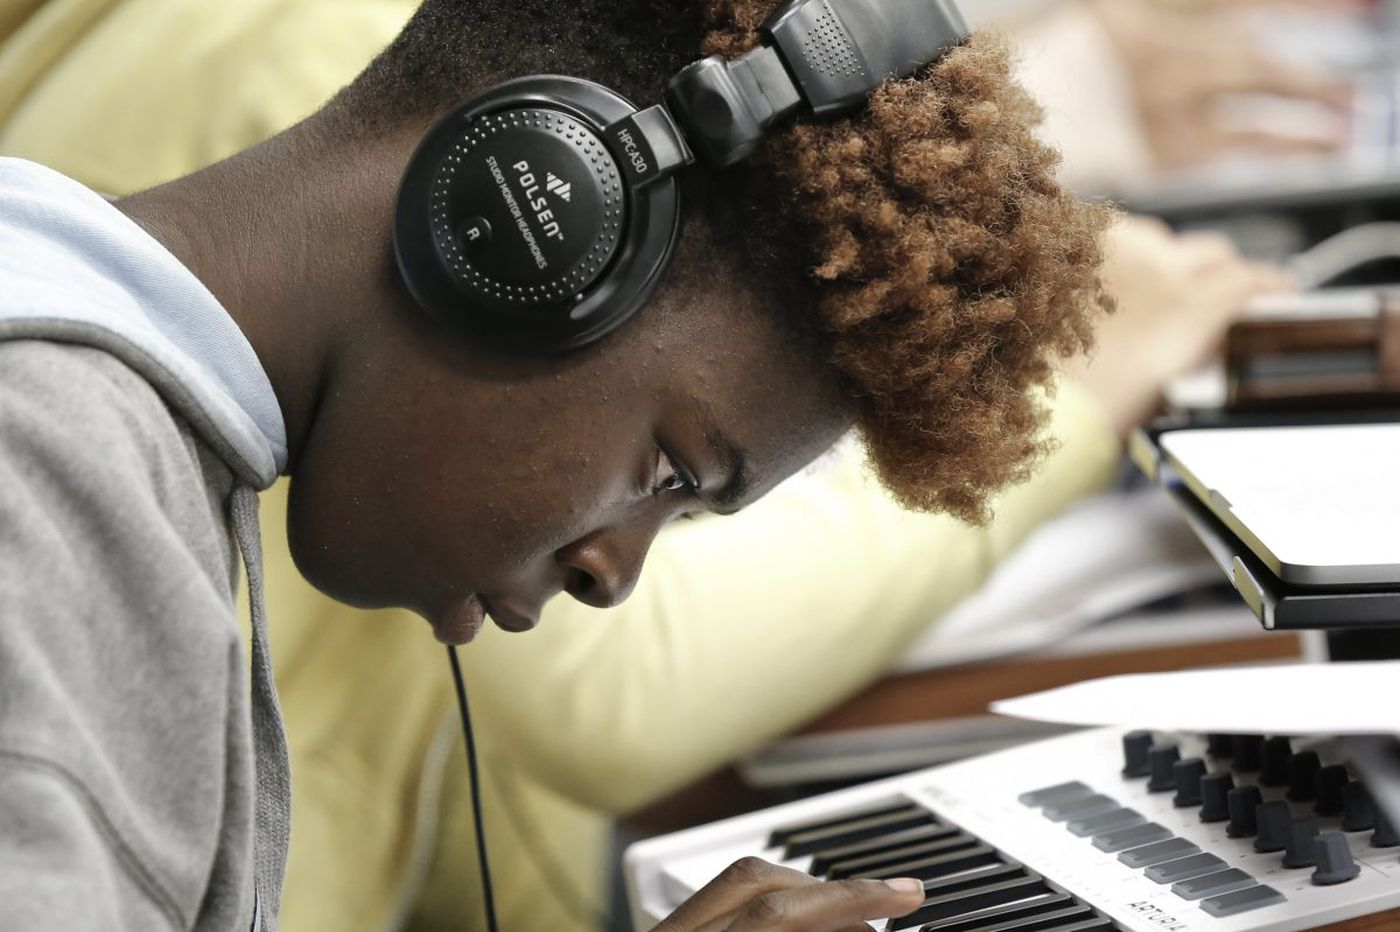 With Grammy nominees, DASH program aims to develop Philly's next entertainment leaders